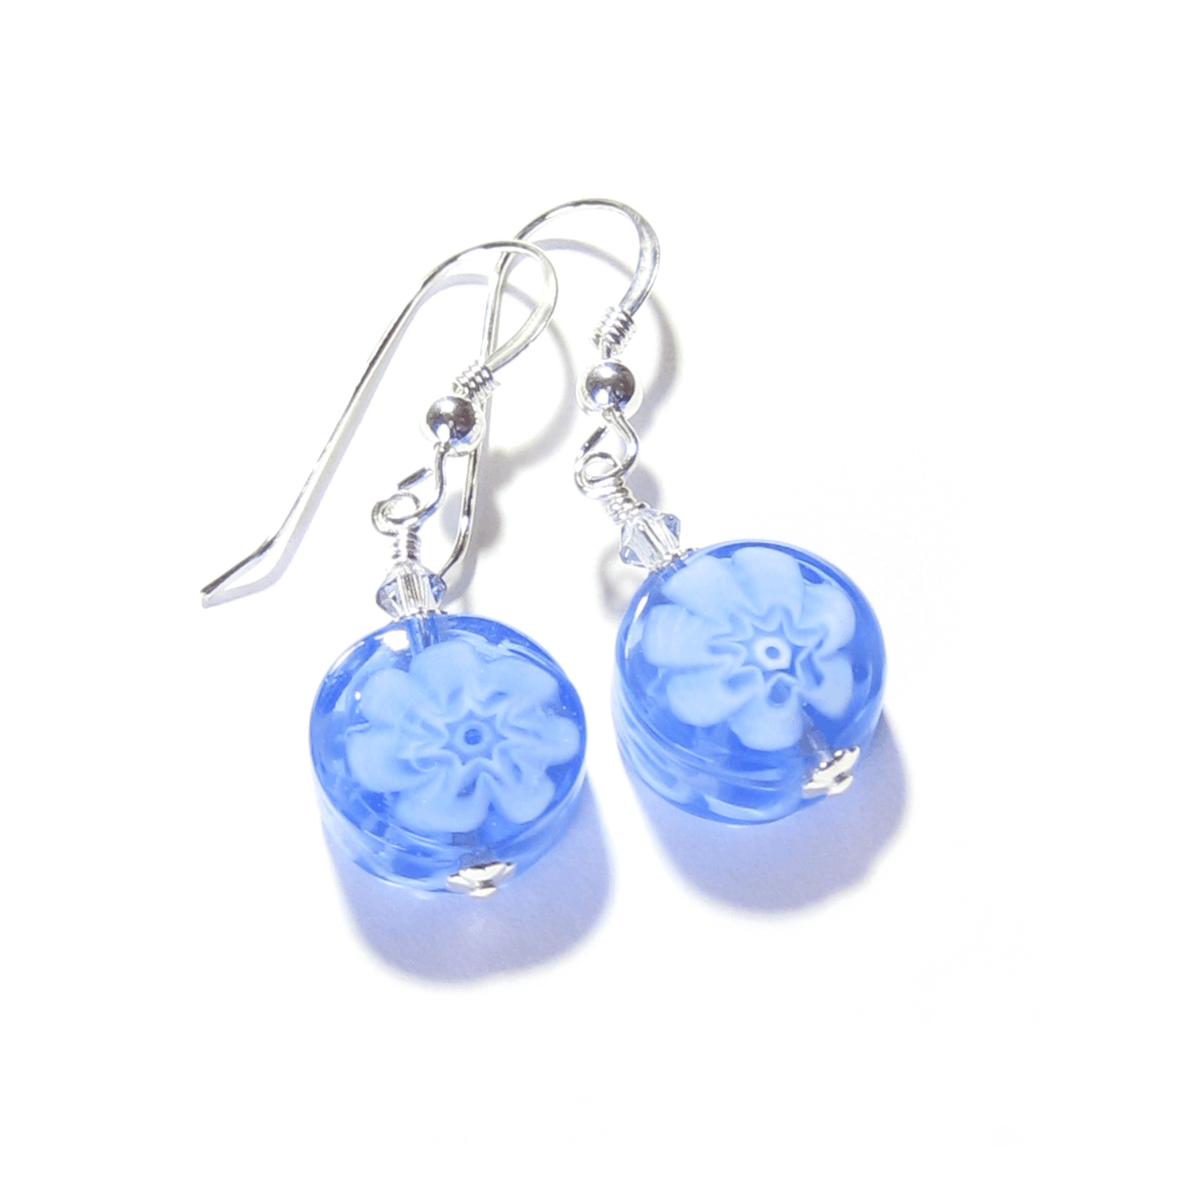 Murano Glass Blue Millefiori Coin Silver Earrings  #murano #earrings #handmade #jewelry #etsymntt #fashion